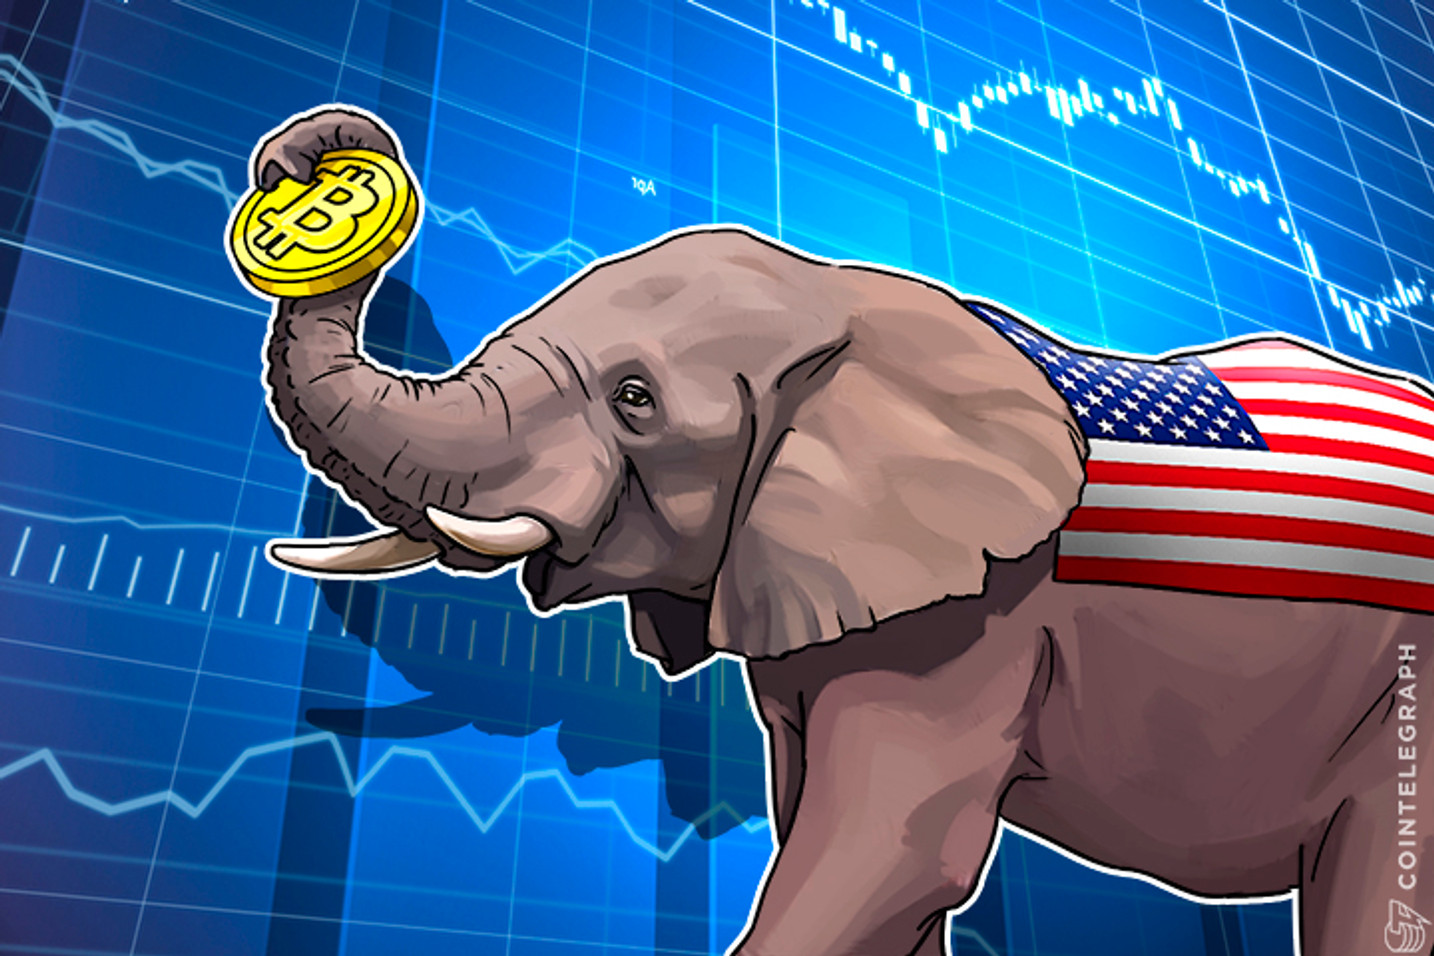 Trump's Victory, Mexico Troubles Push Price of Bitcoin to Multi-Month High